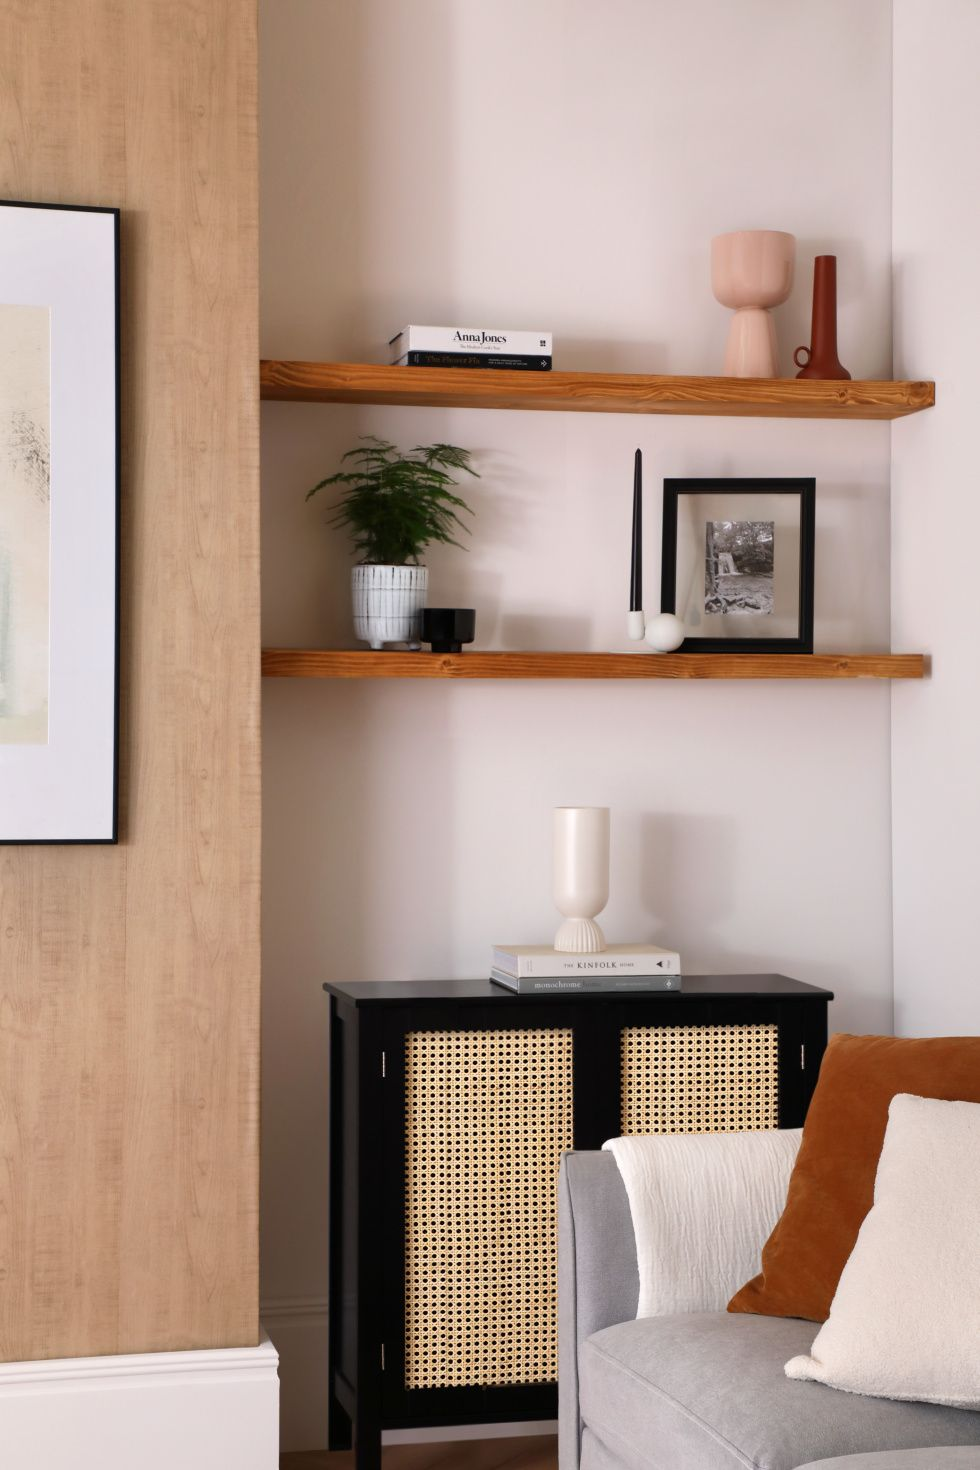 Modern living room with potted plant, vases, books, candle and framed photo on the wooden shelf